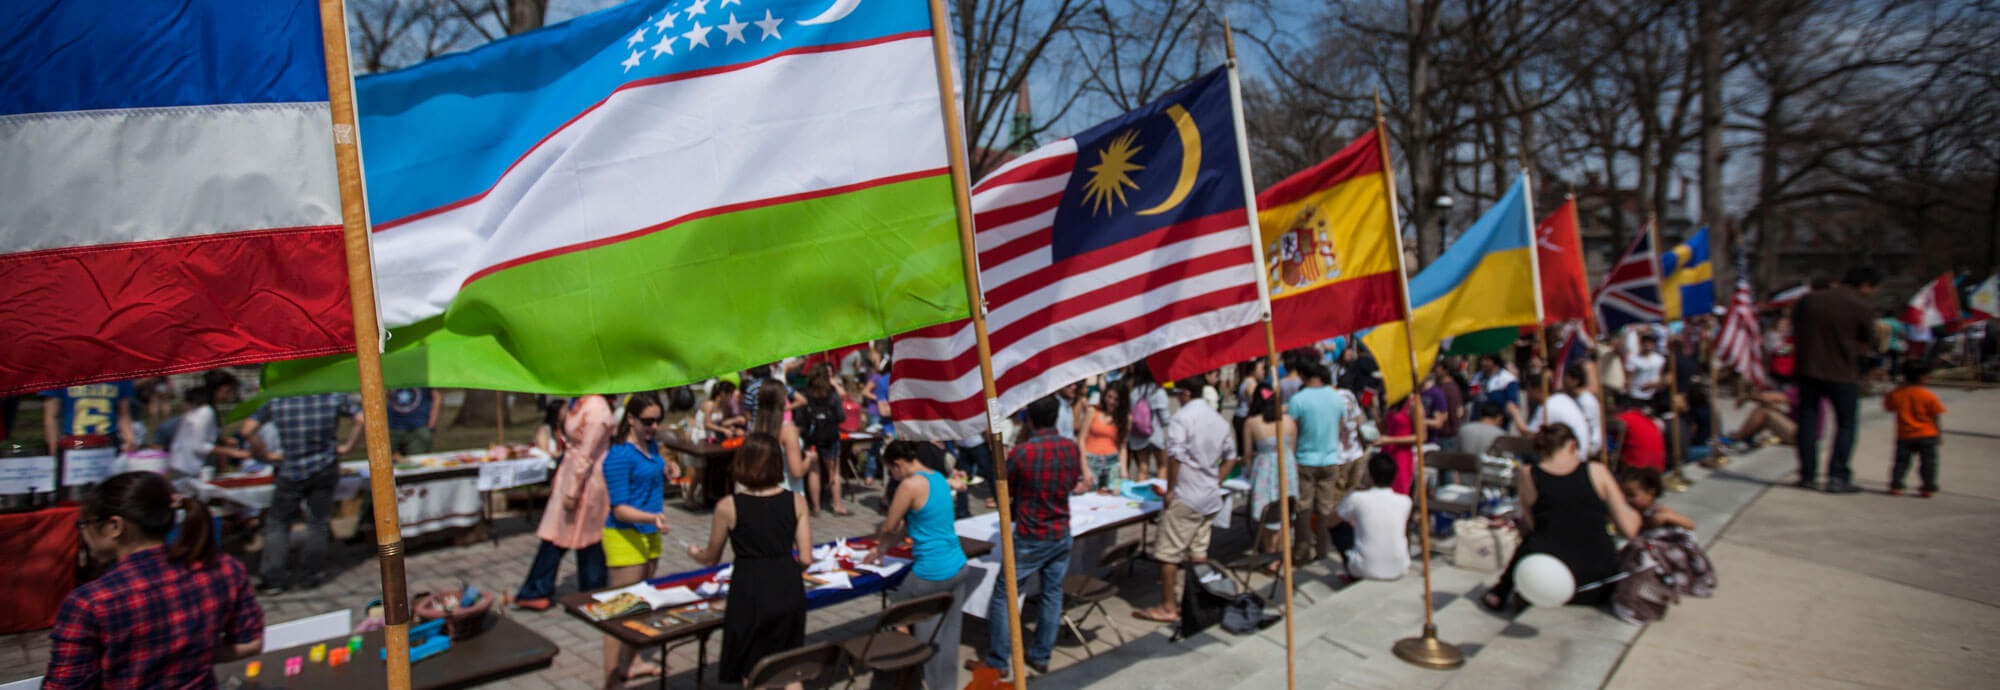 International flags on campus